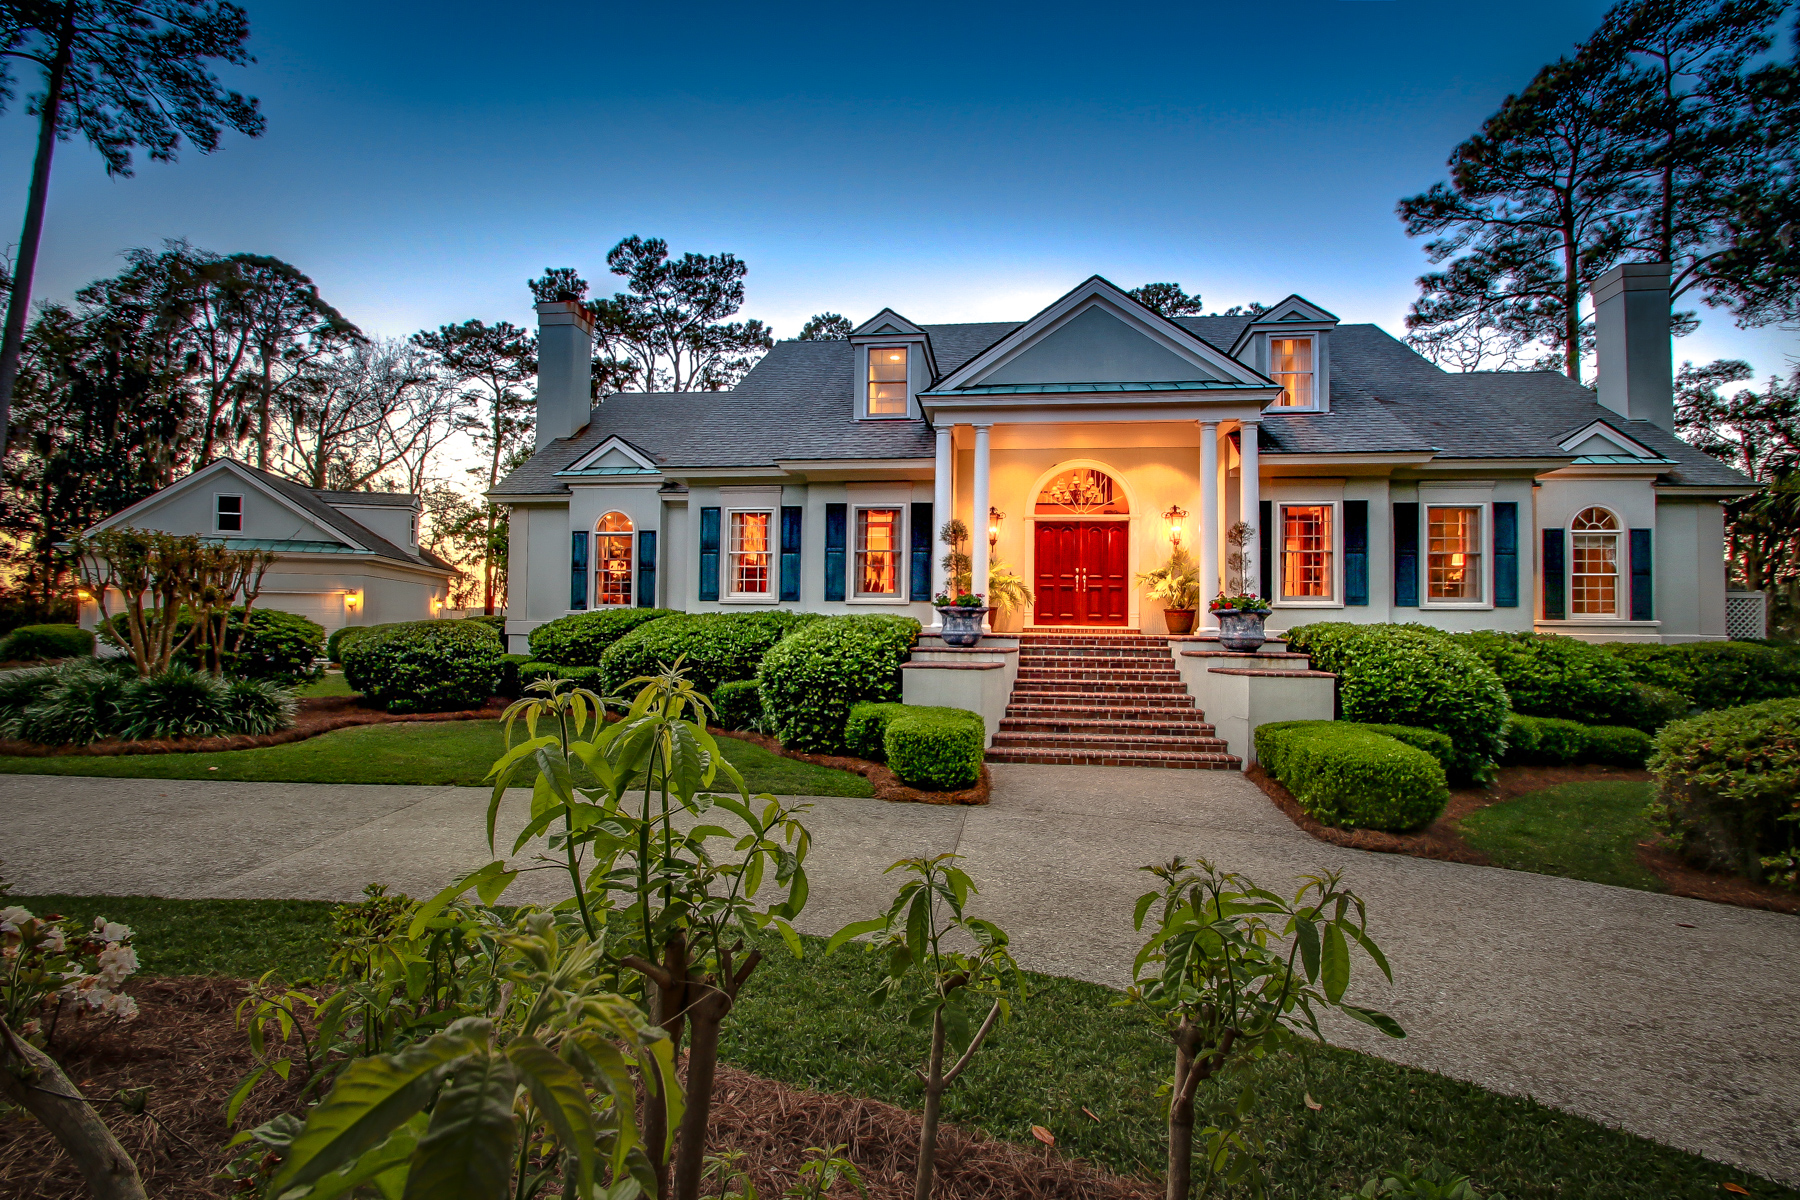 Villa per Vendita alle ore 12 Eagle Point Drive Savannah, Georgia, 31406 Stati Uniti